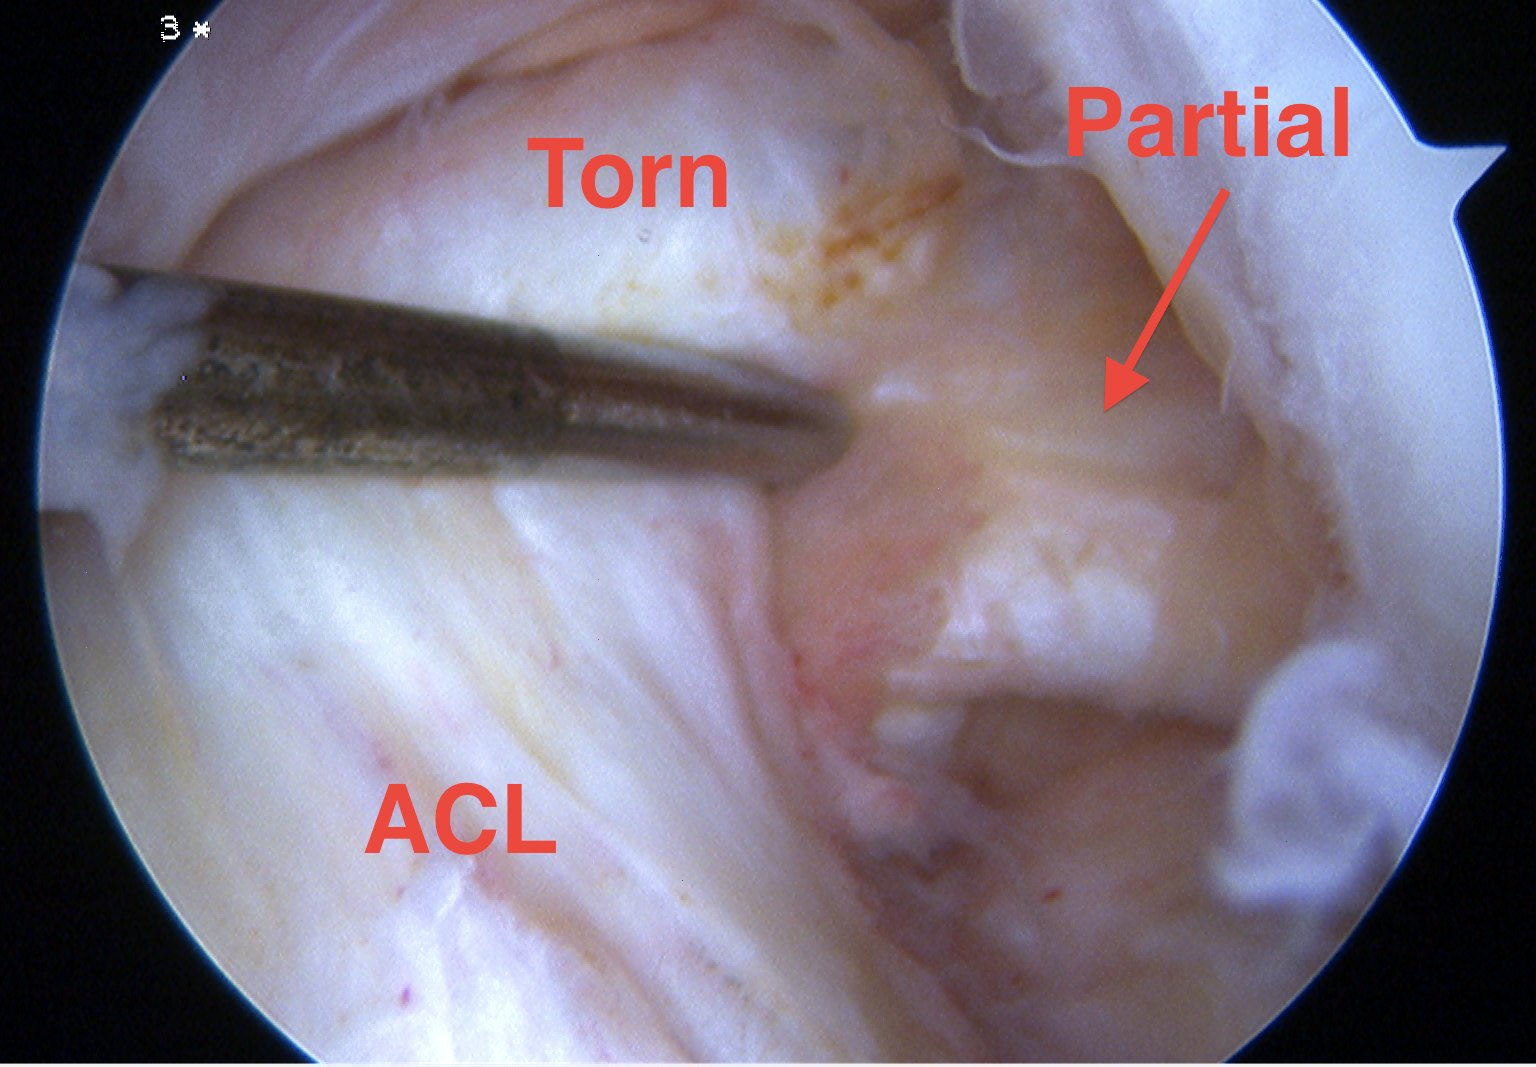 ACL Partial Tear Arthroscopy